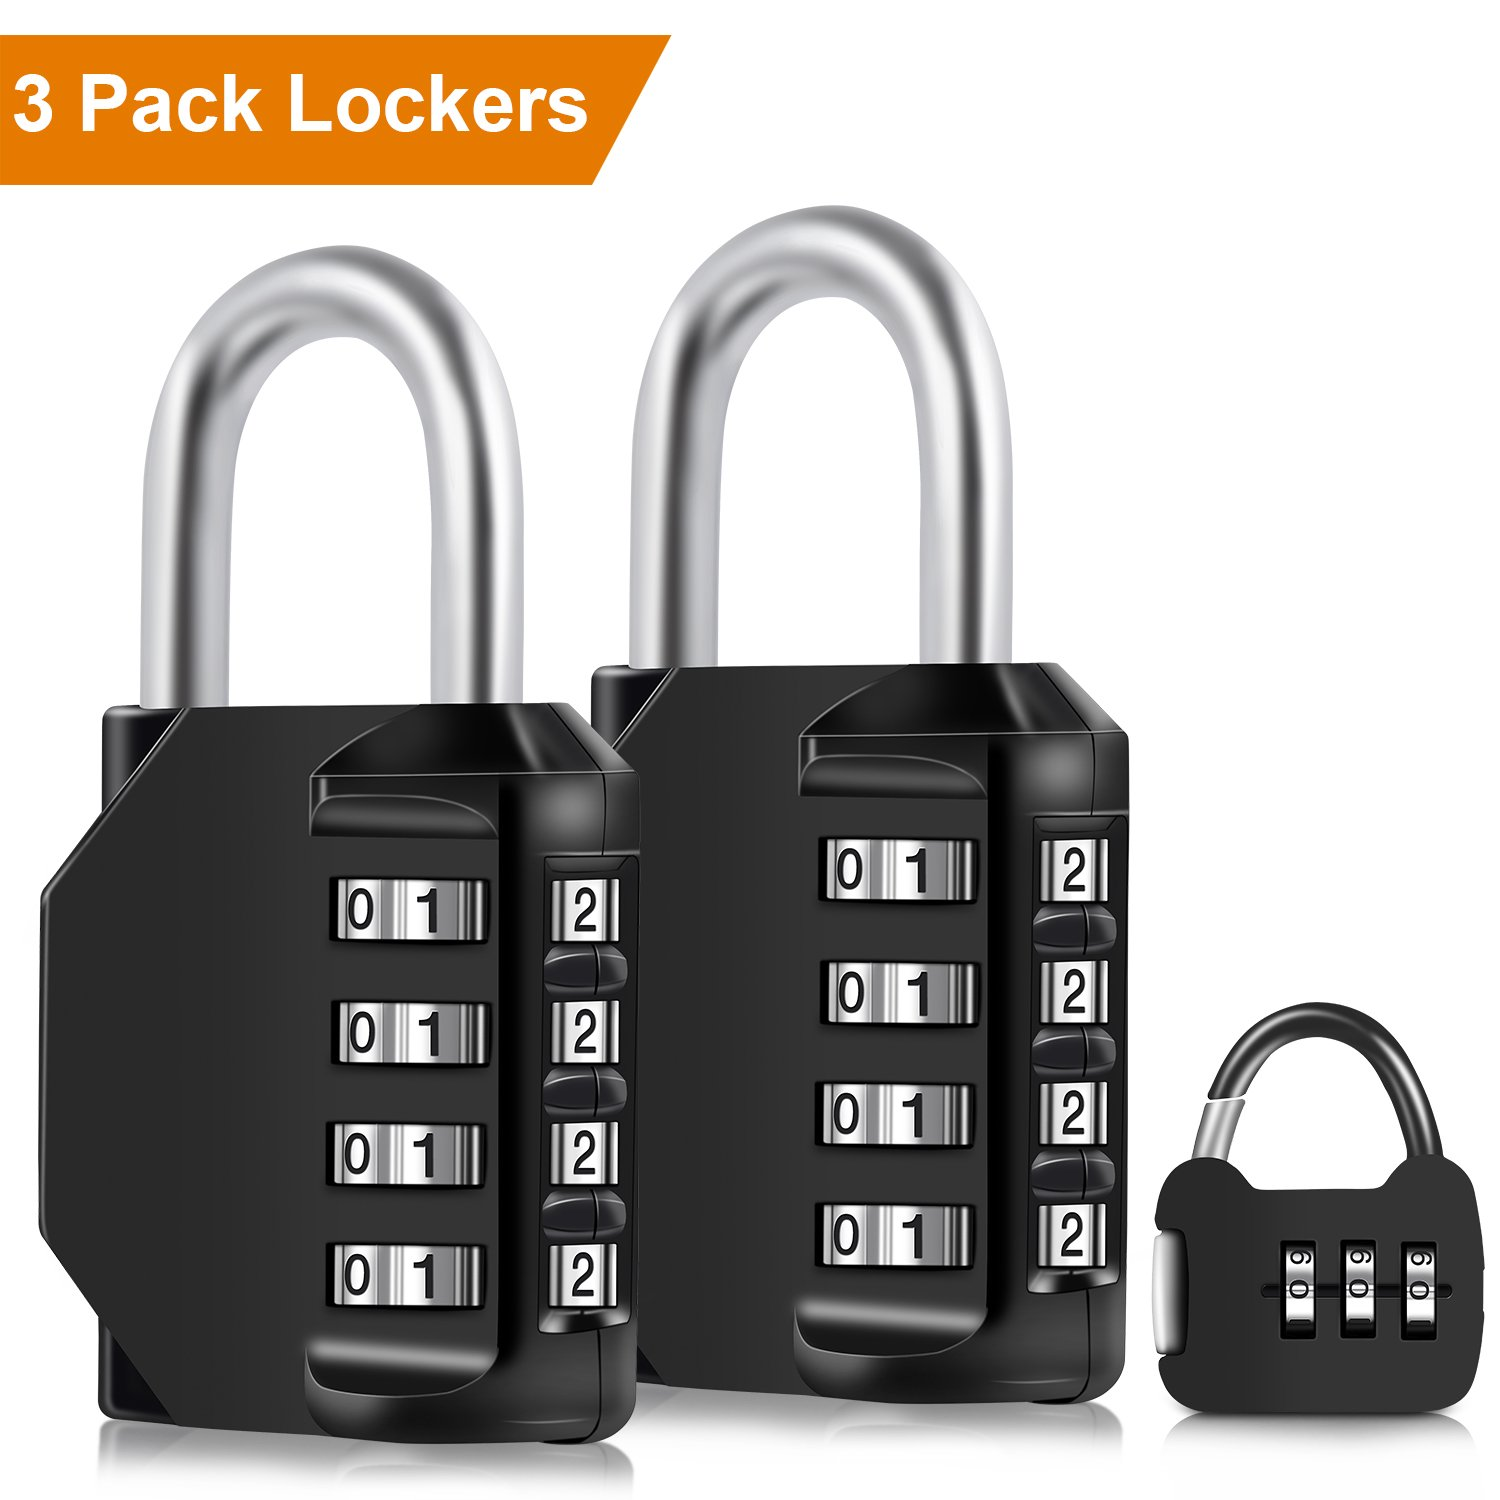 iHomy 3-Pack 4-Digit Weatherproof Combination Portable Padlocks, 2-Pack Lock Padlock for School, Employee, Outdoor, Gym Locker, Case, Toolbox, Fence, Cabinet with Mini 1-Pack (Black) by iHomy